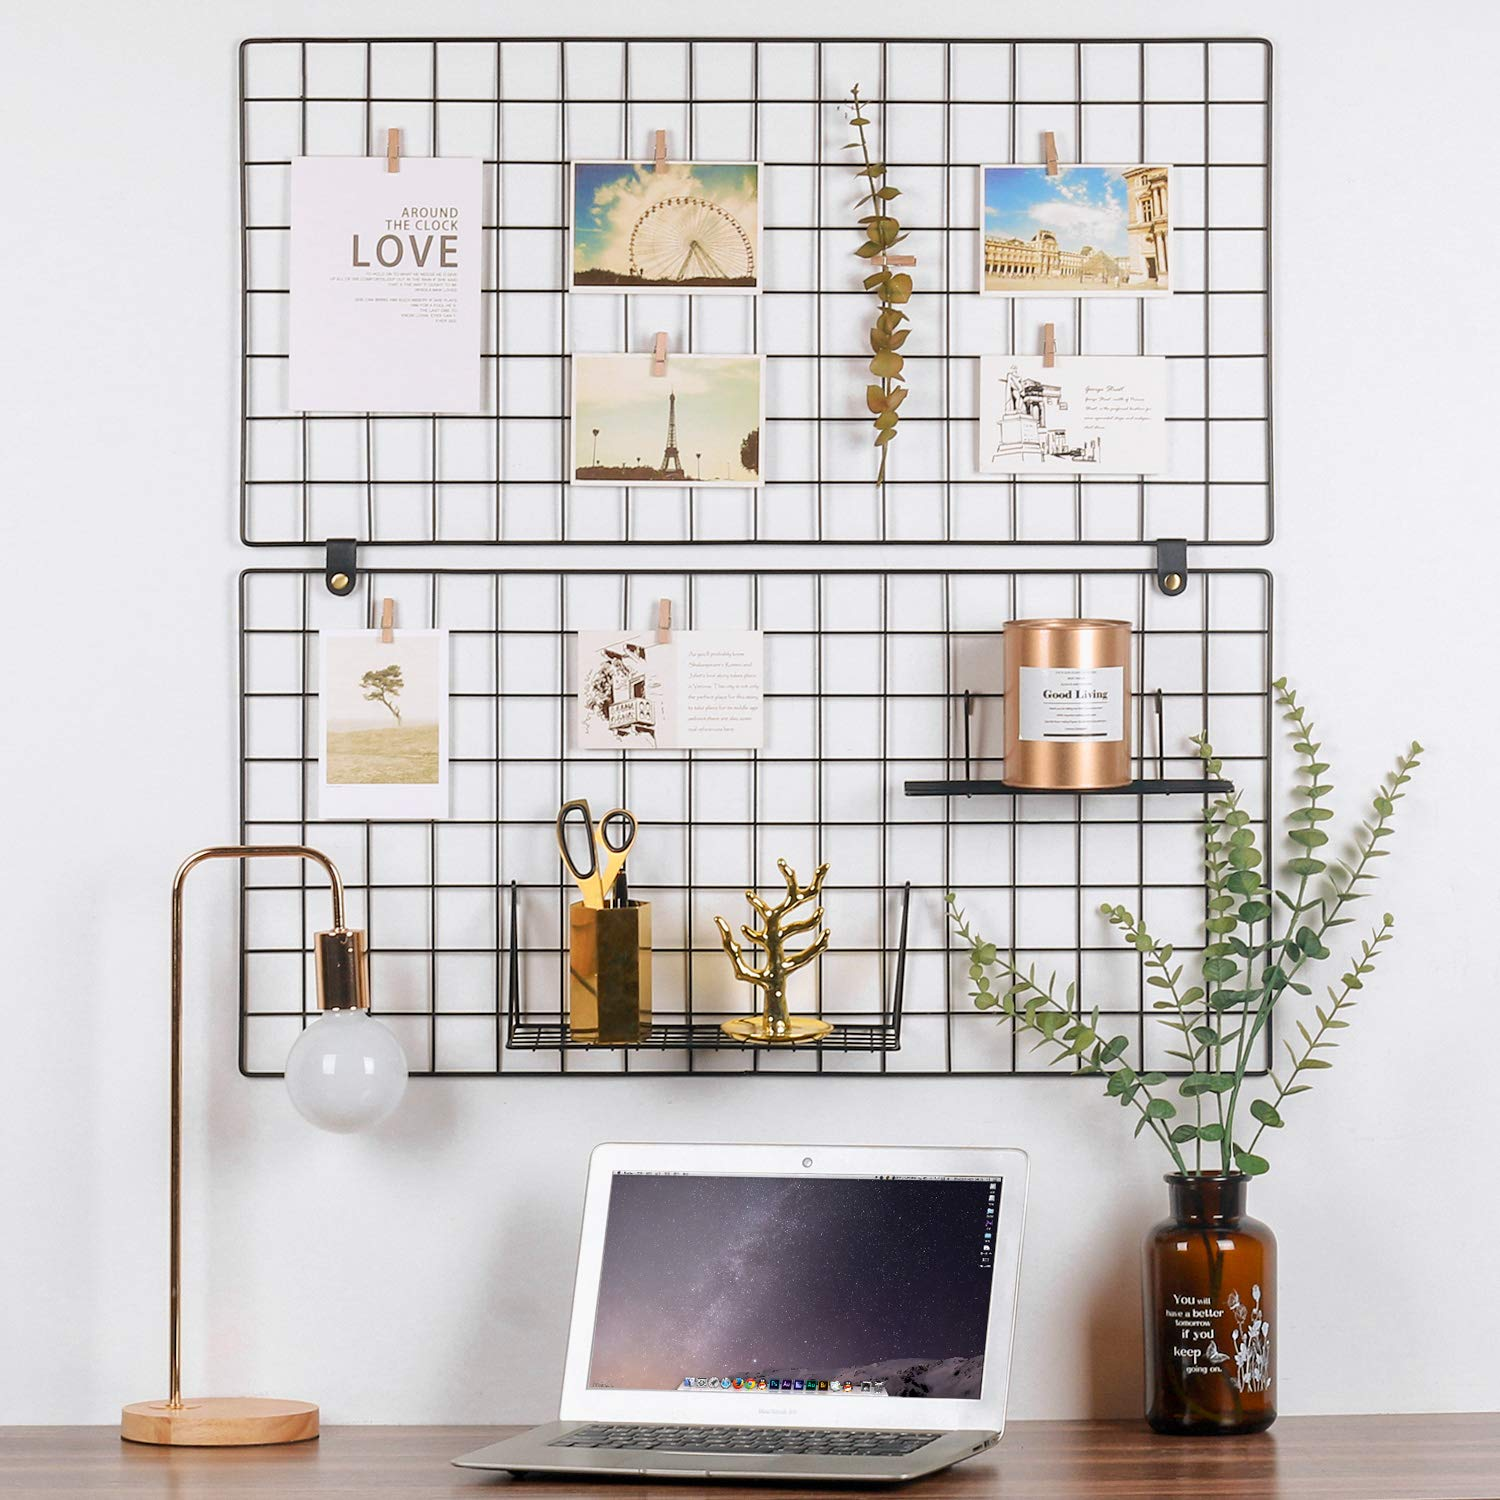 Kufox Painted Wire Wall Grid Panel, Multifunction Photo Hanging Display and Wall Storage Organizer, Pack of 2, Size 31.5'' x 15.8'', Black by Kufox